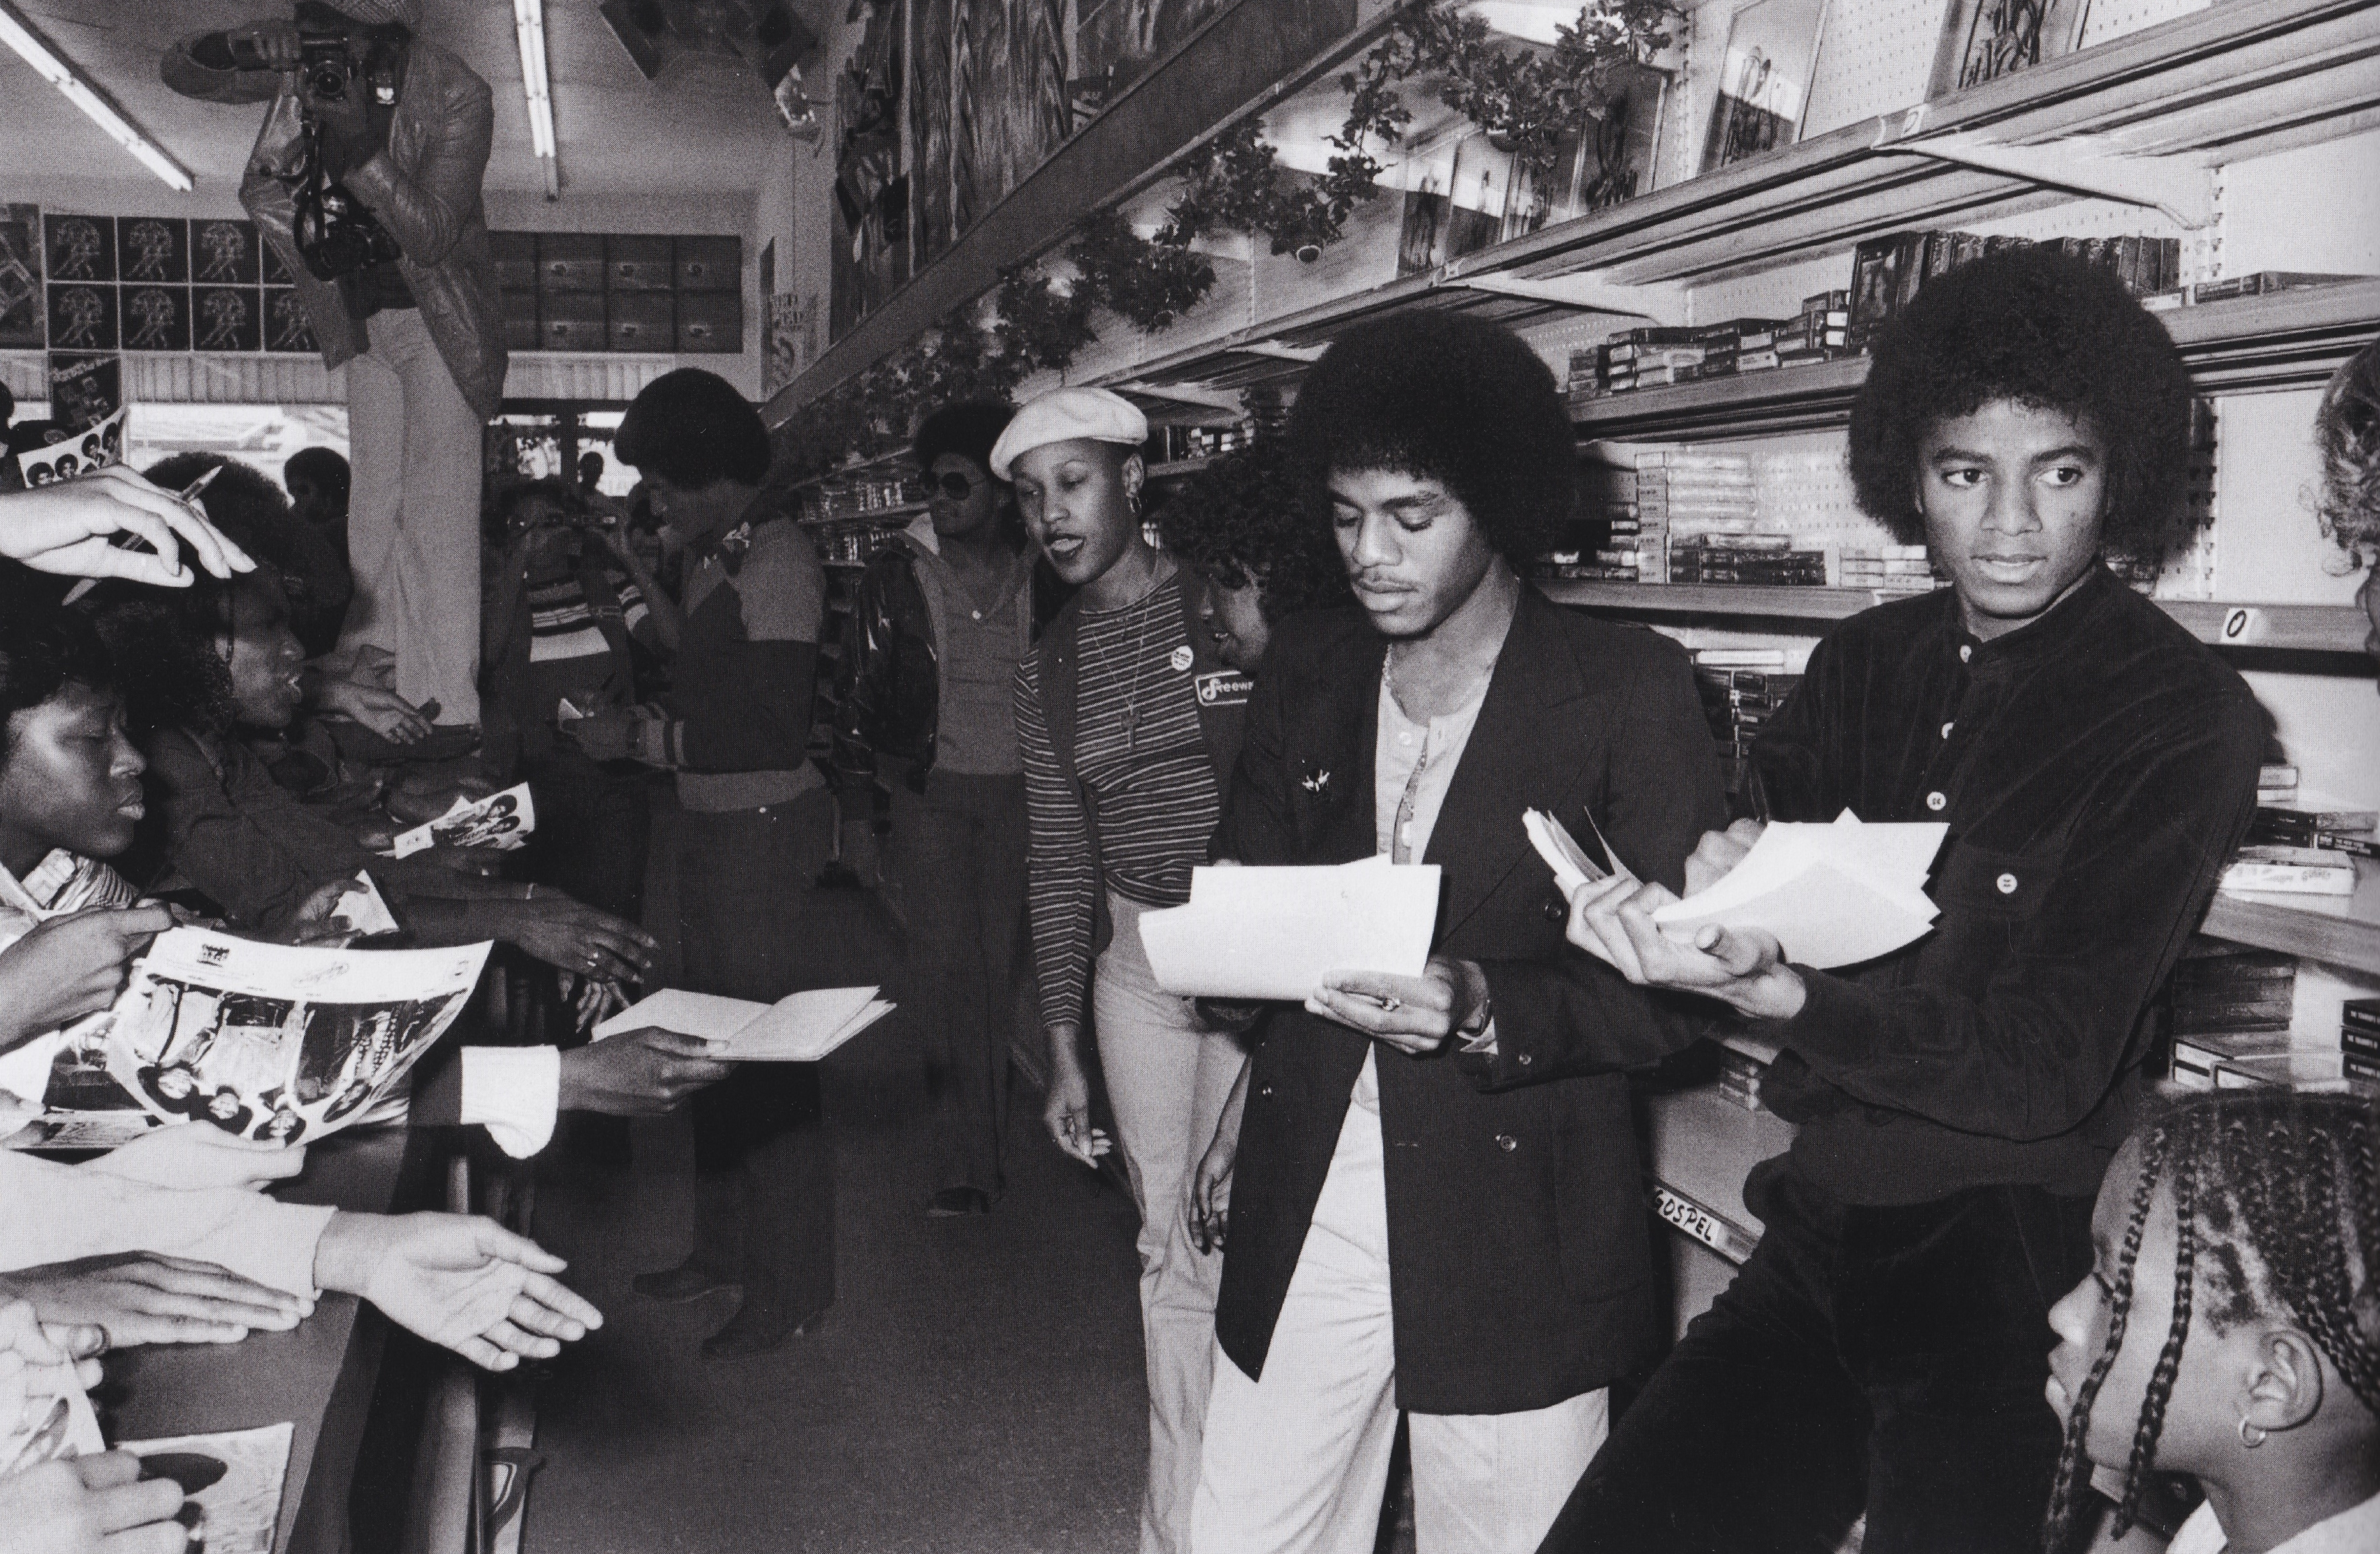 Michael Jackson - HQ Scan - The Jacksons' In-Store Album Promotion (1978)